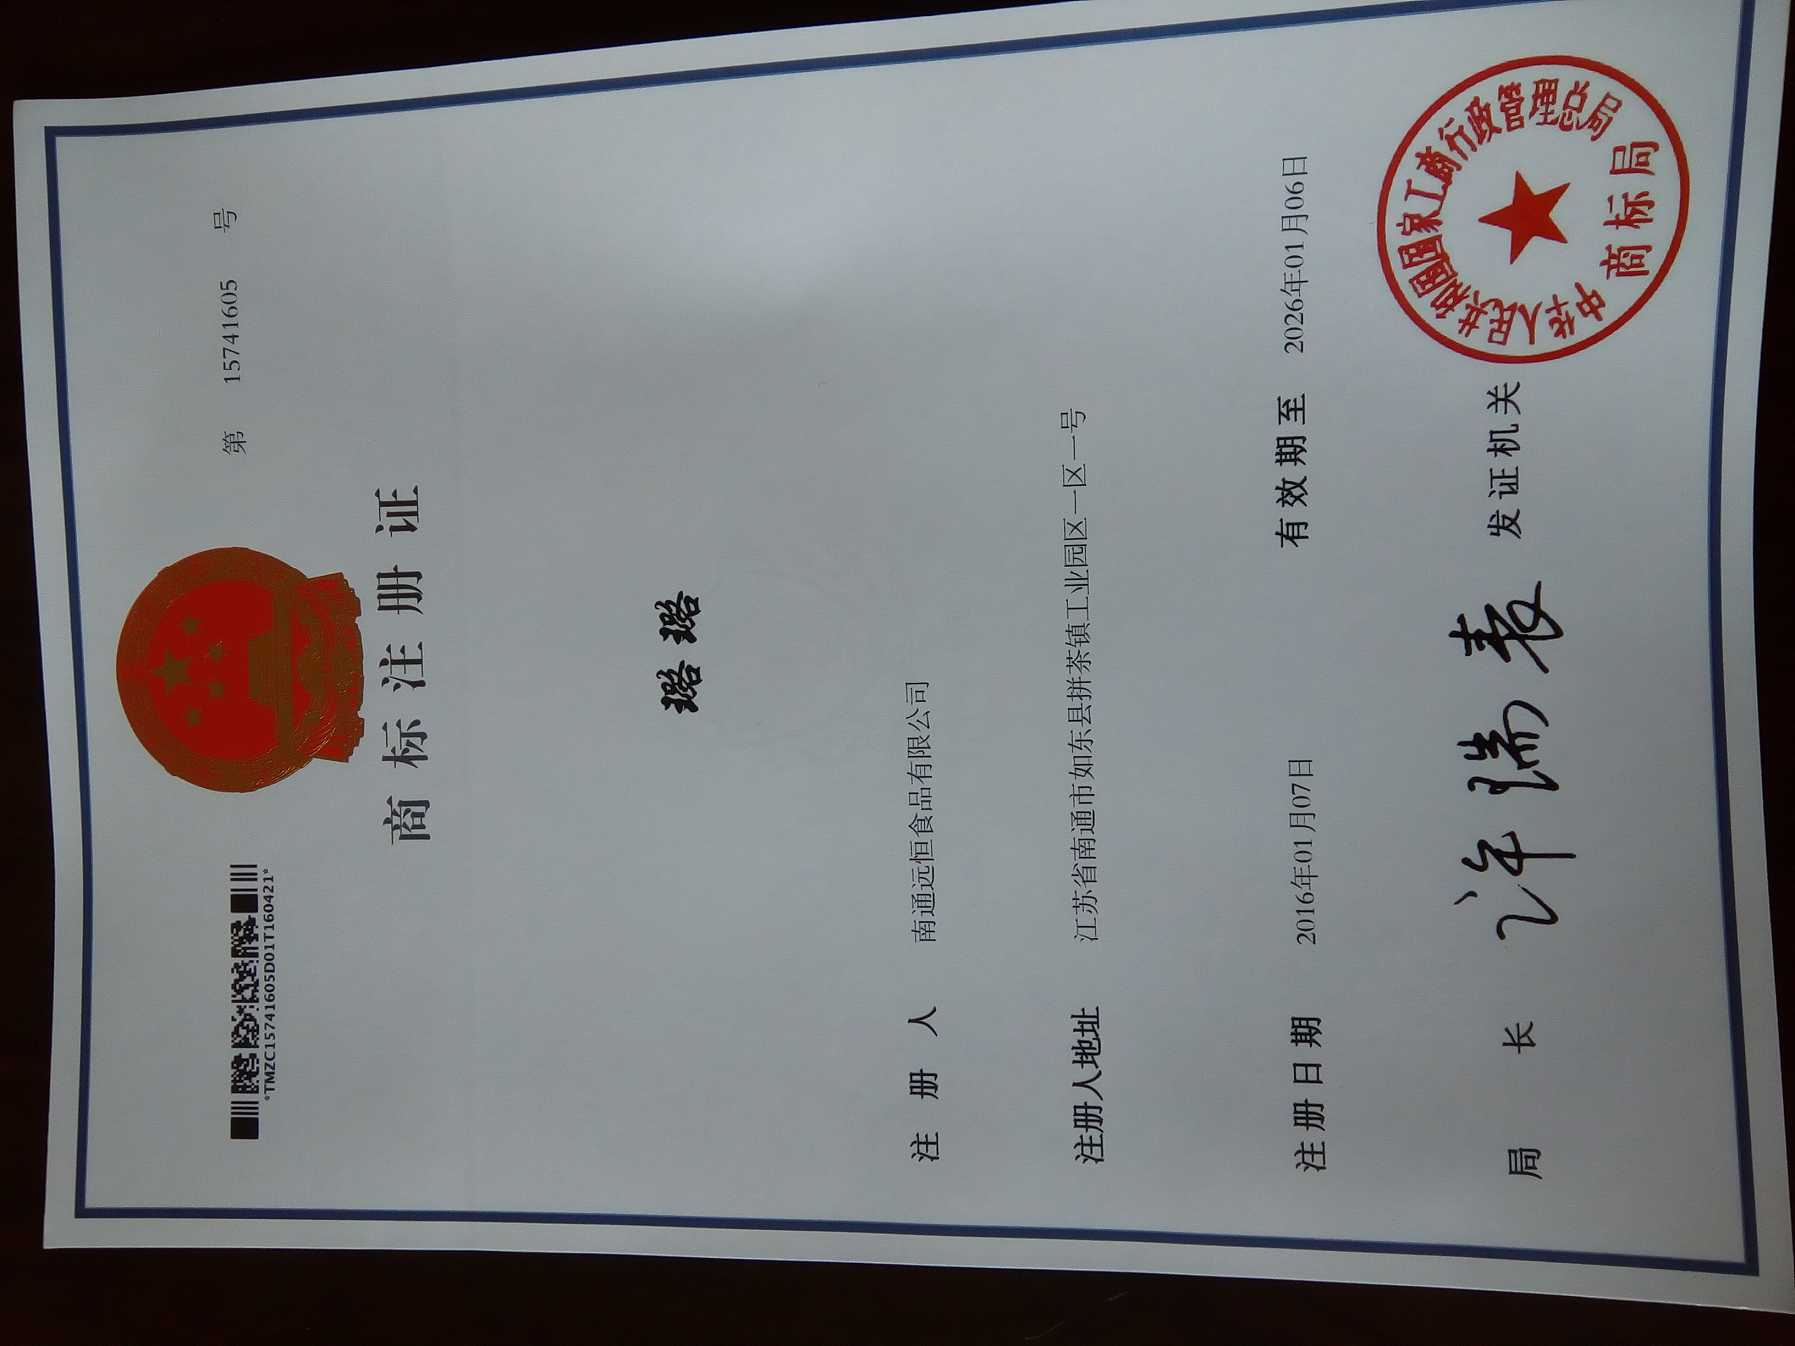 OEM brand certificate of our factory